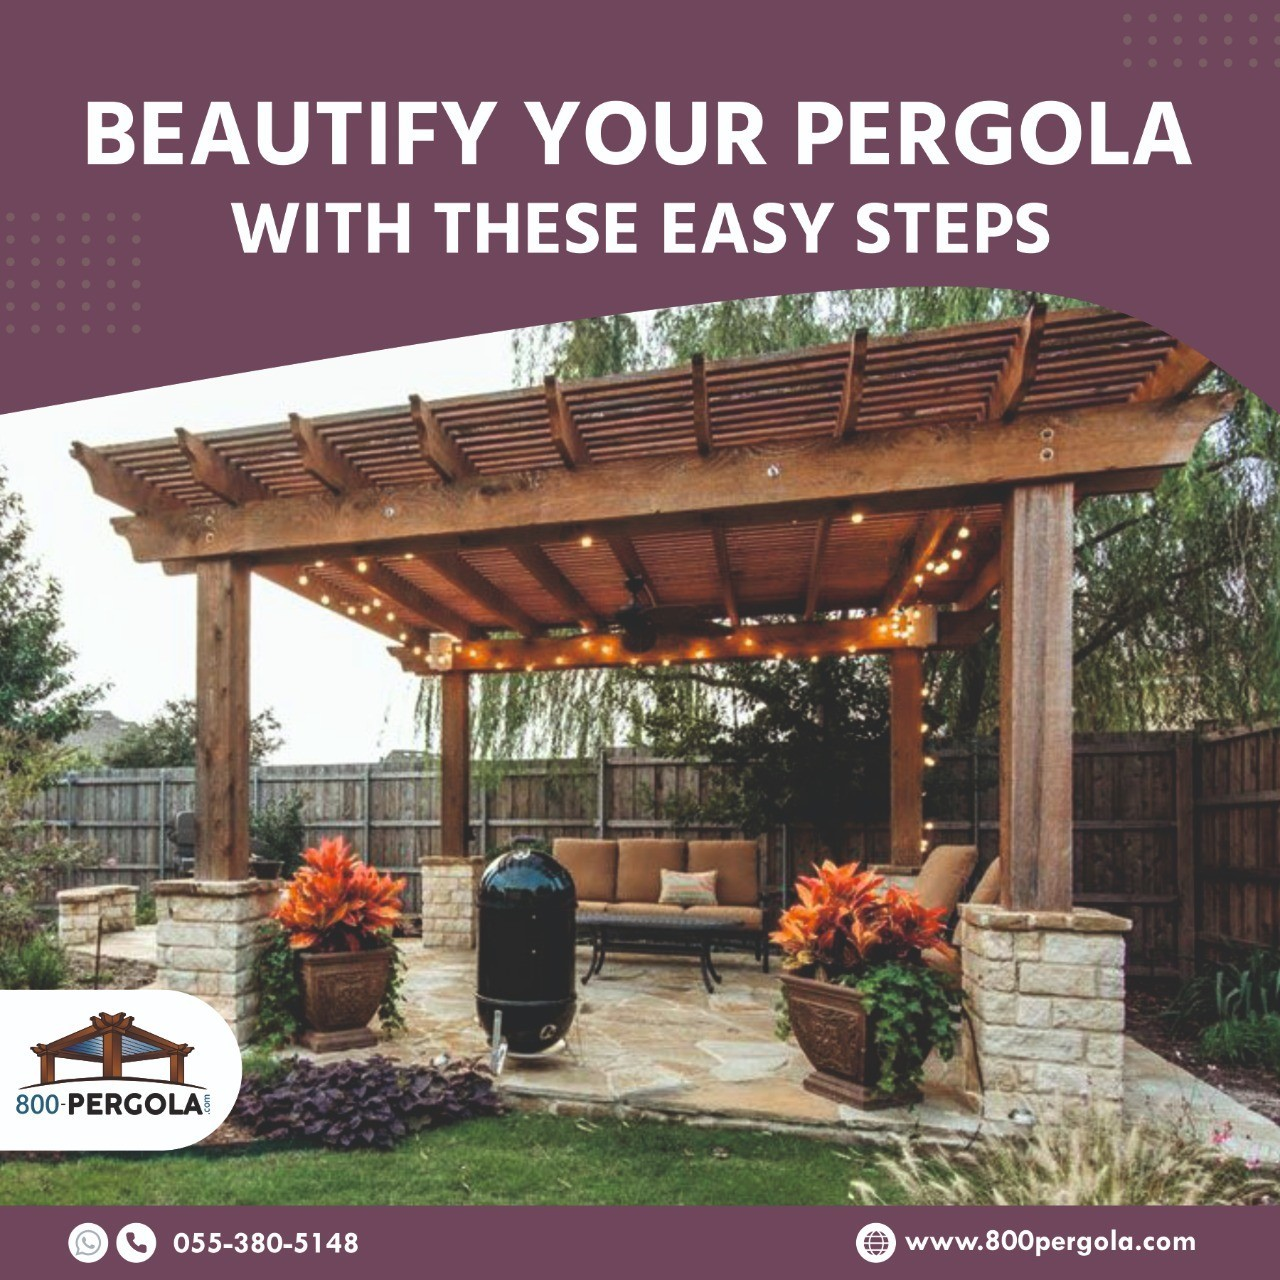 Beautify Your Pergola with These Easy Steps